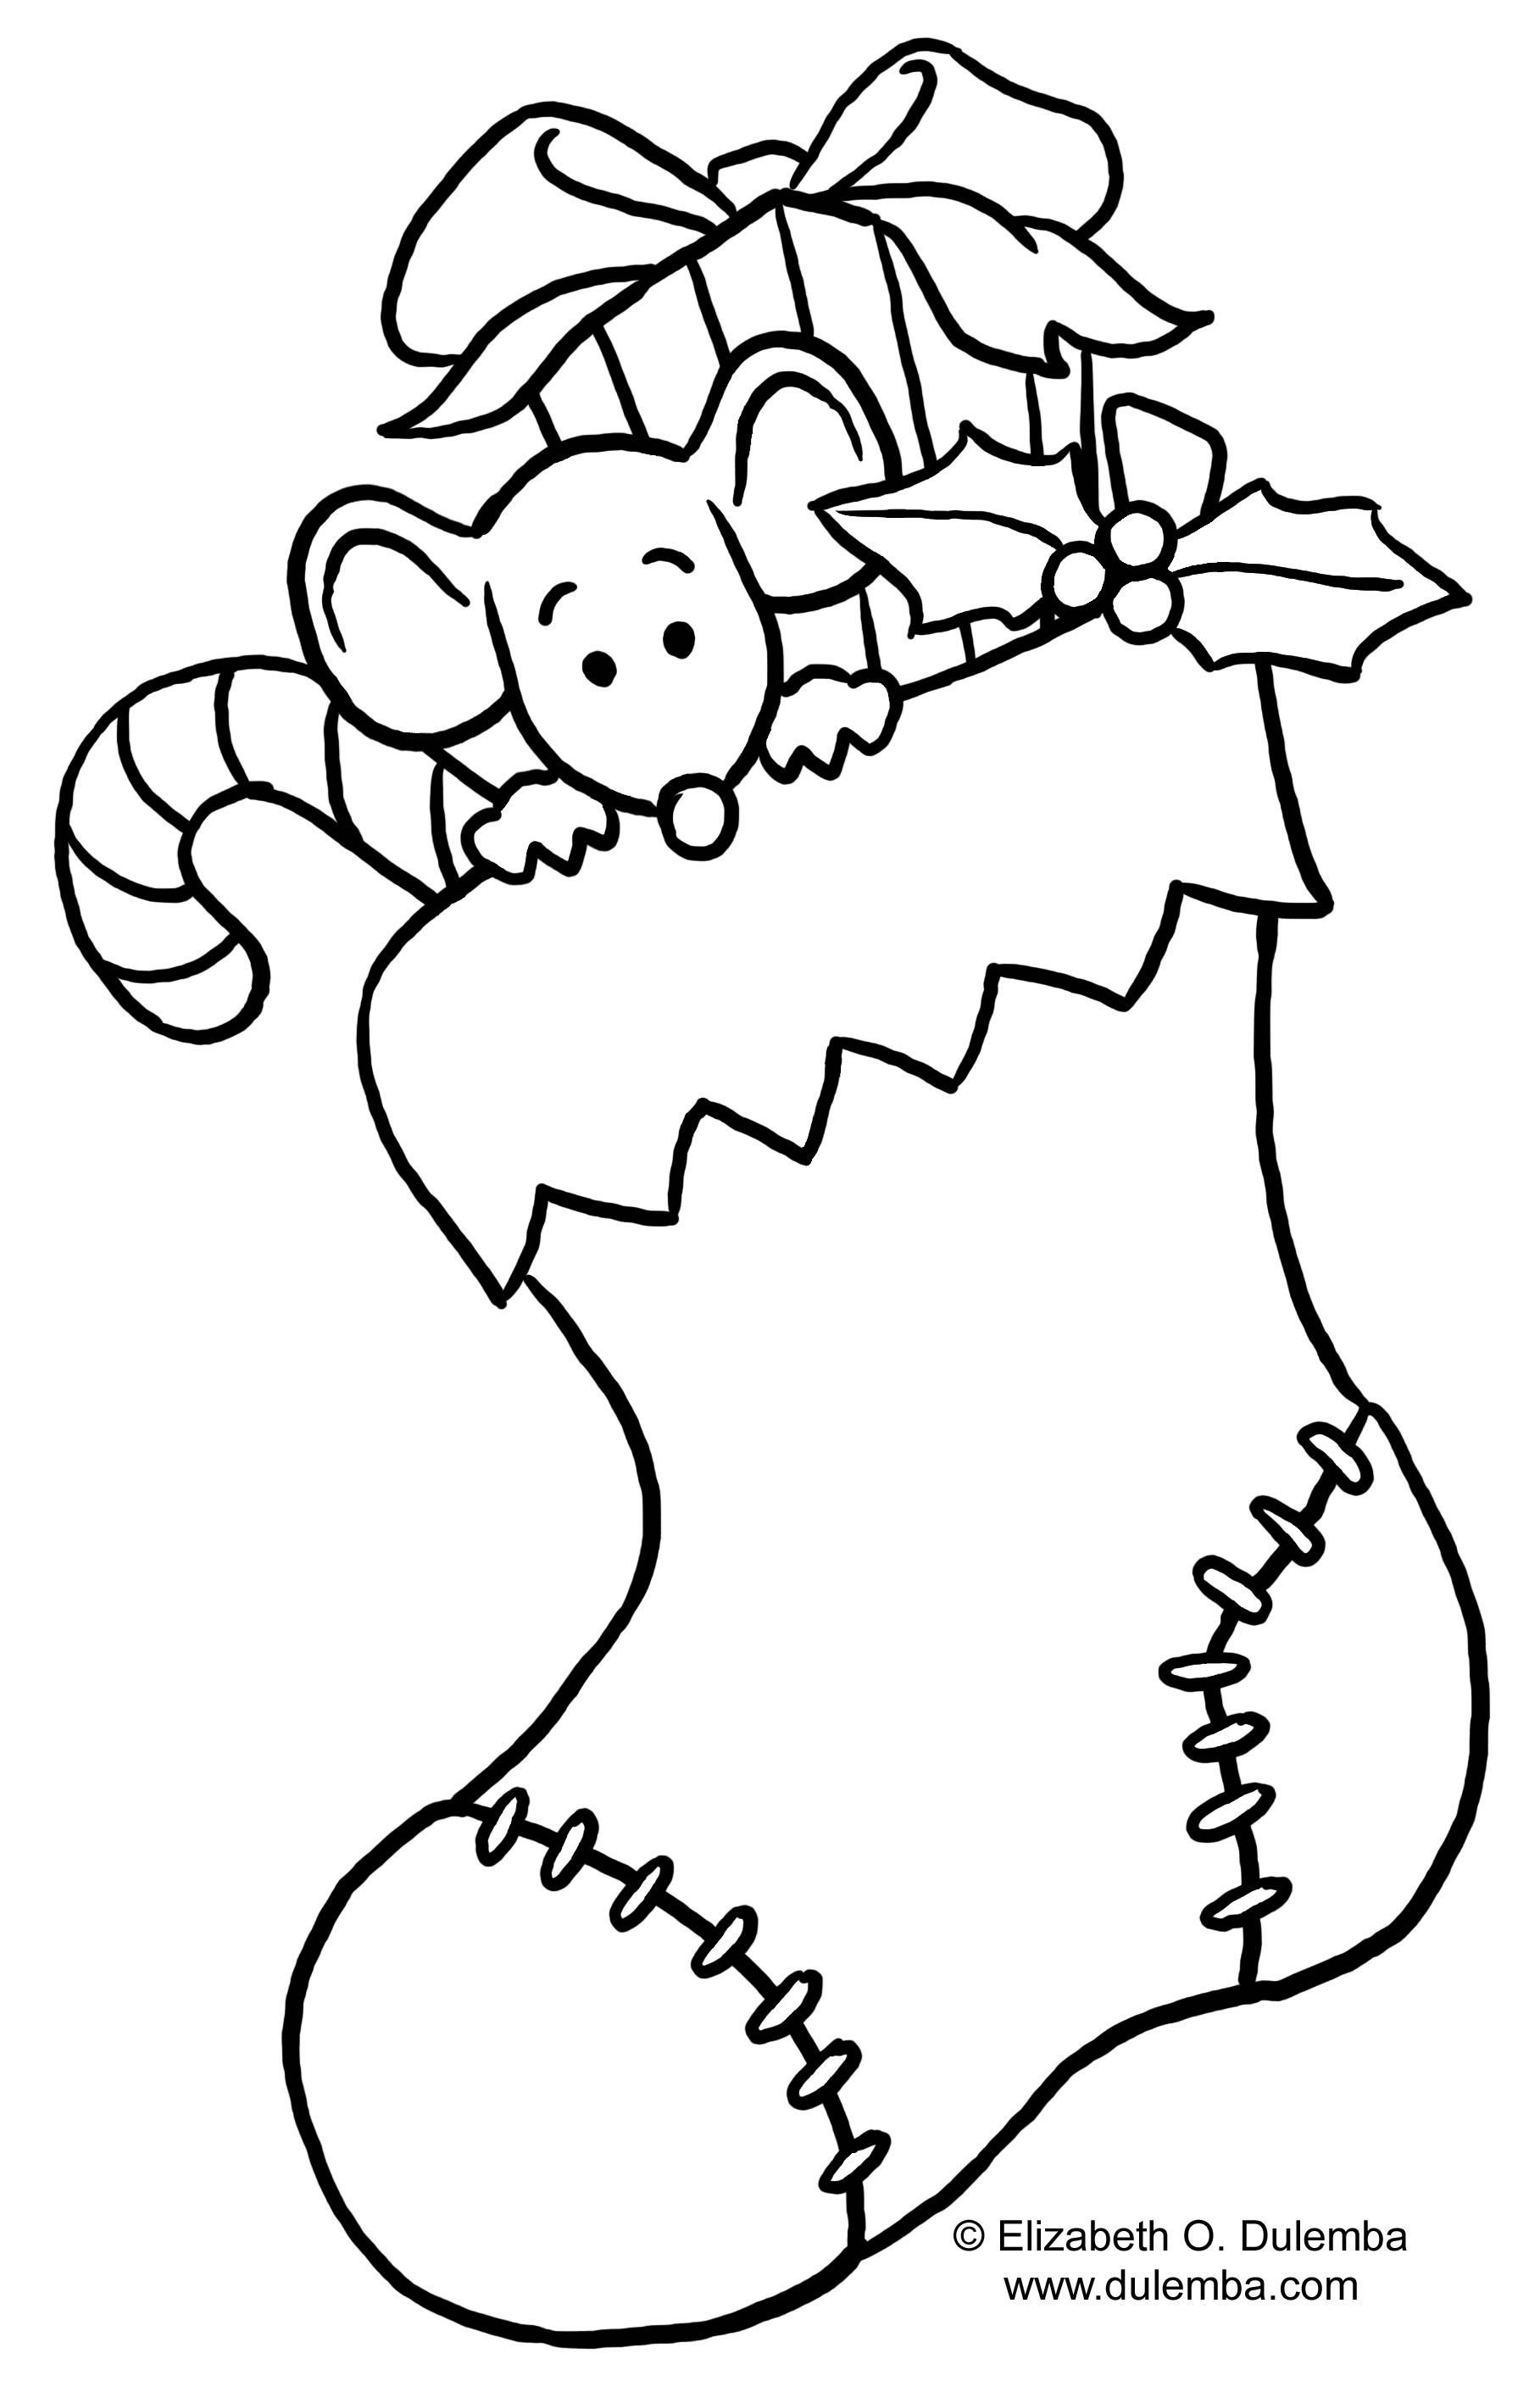 Christmas Colouring Pages Year 1 With Coloring For Kids 2018 Z31 Page